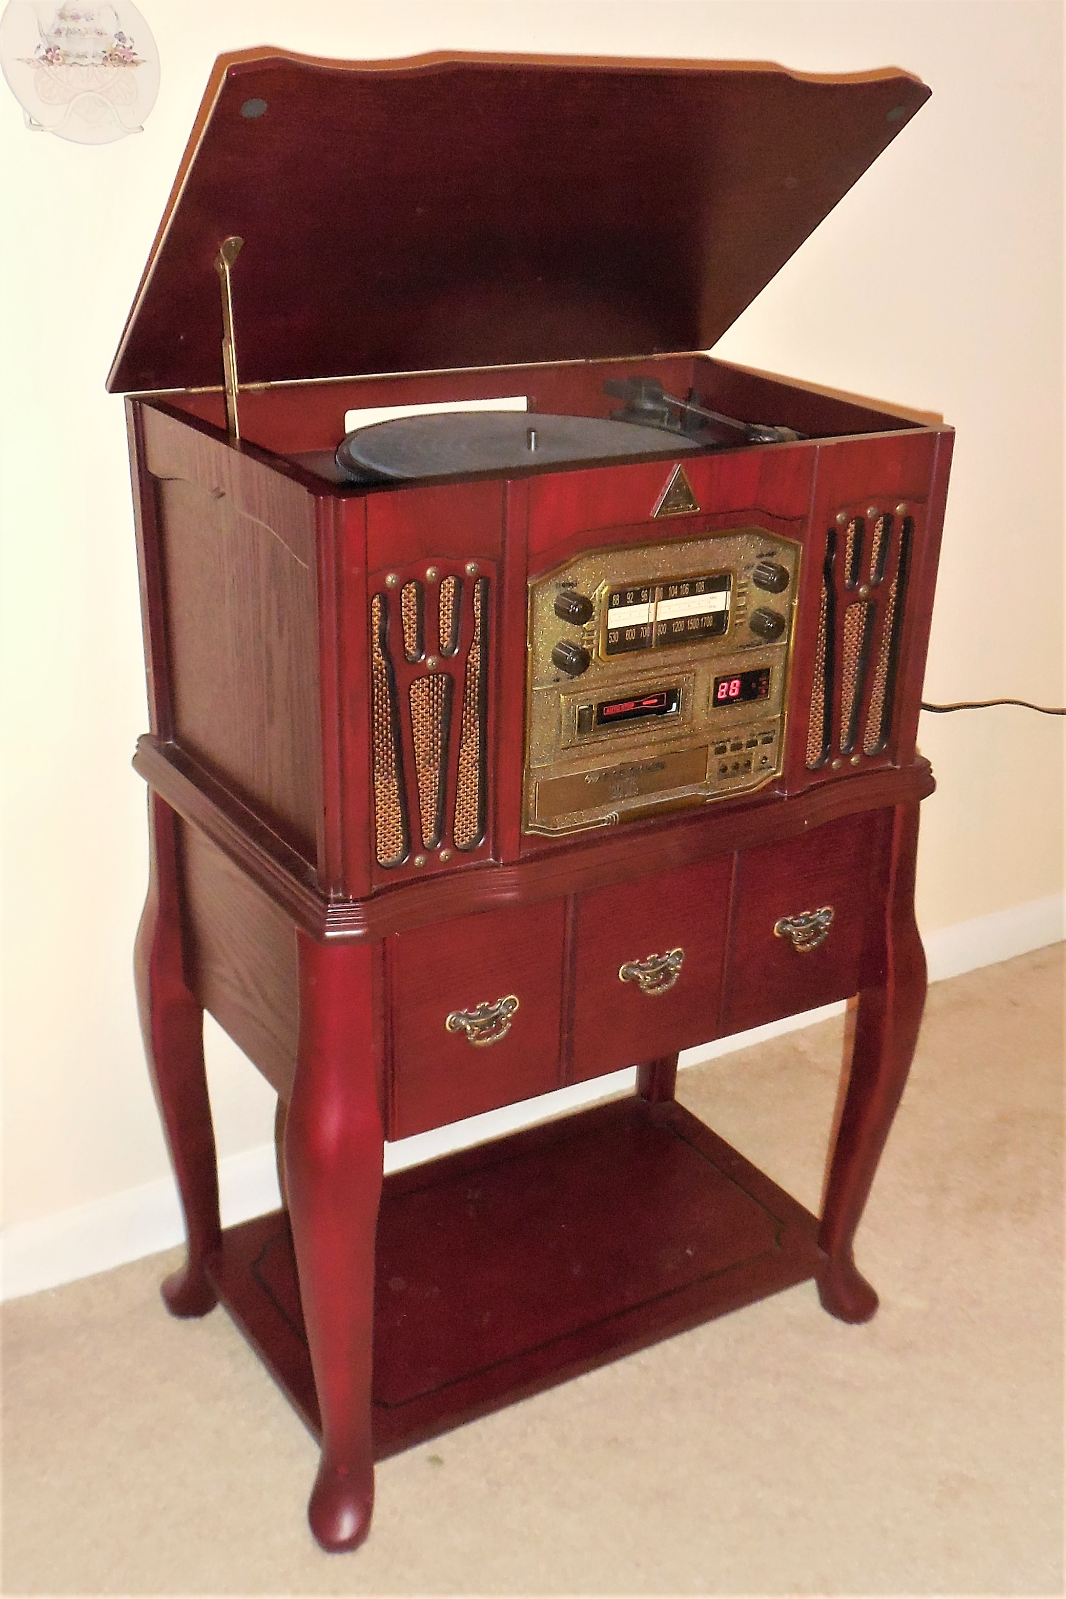 Primary image for Stereo Turntable CD Player Cassette AM/FM Radio Chery Finish Wood Furniture